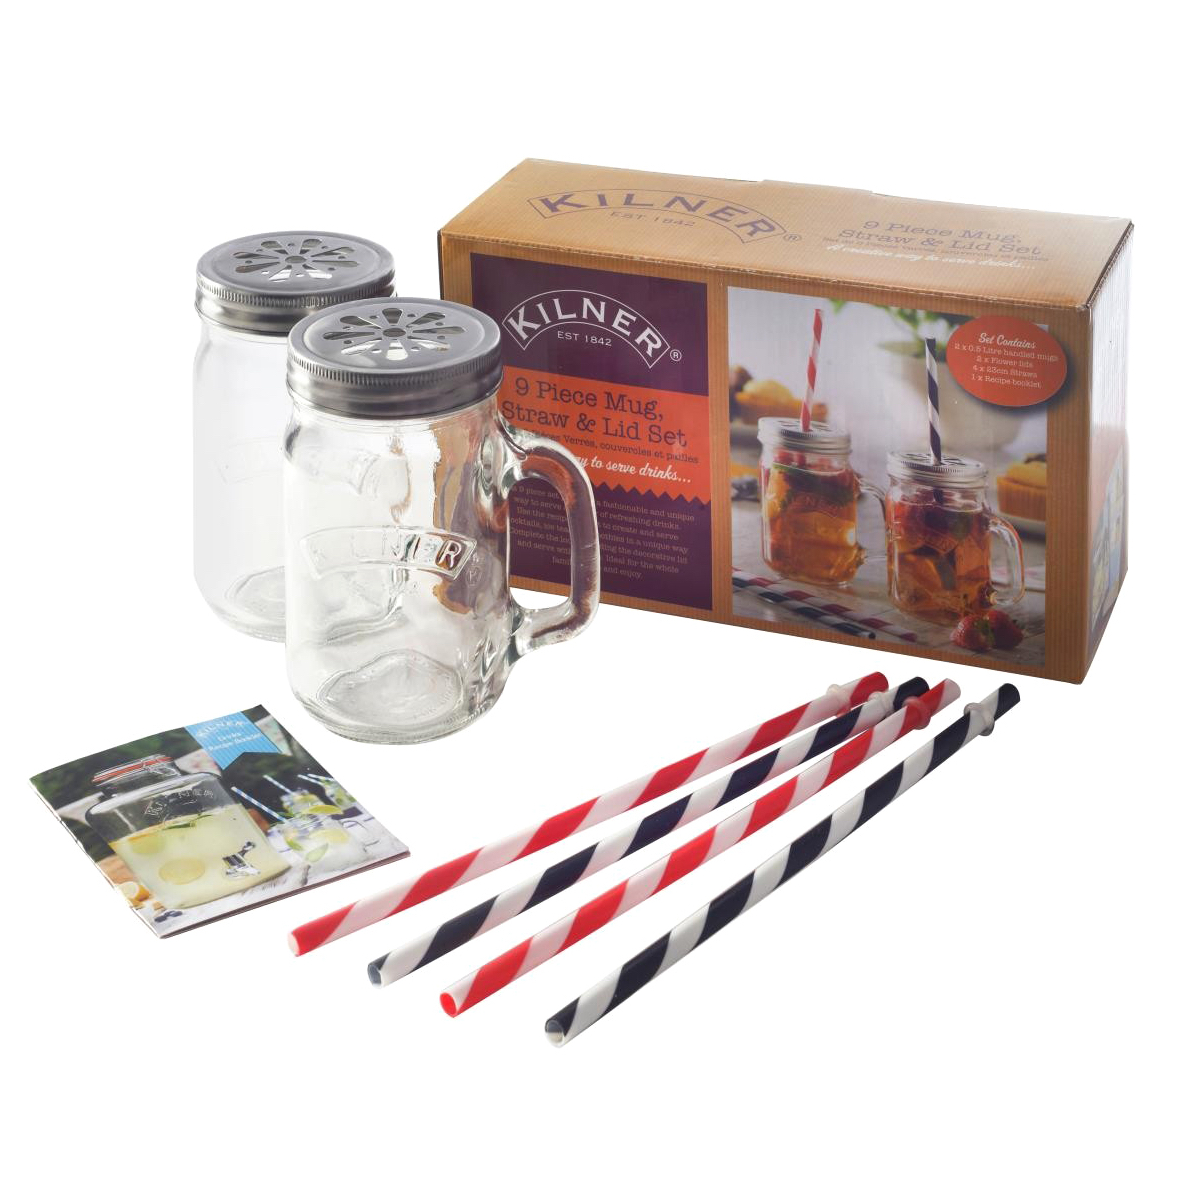 A-Kilner 9 Piece Mug with Straw Set